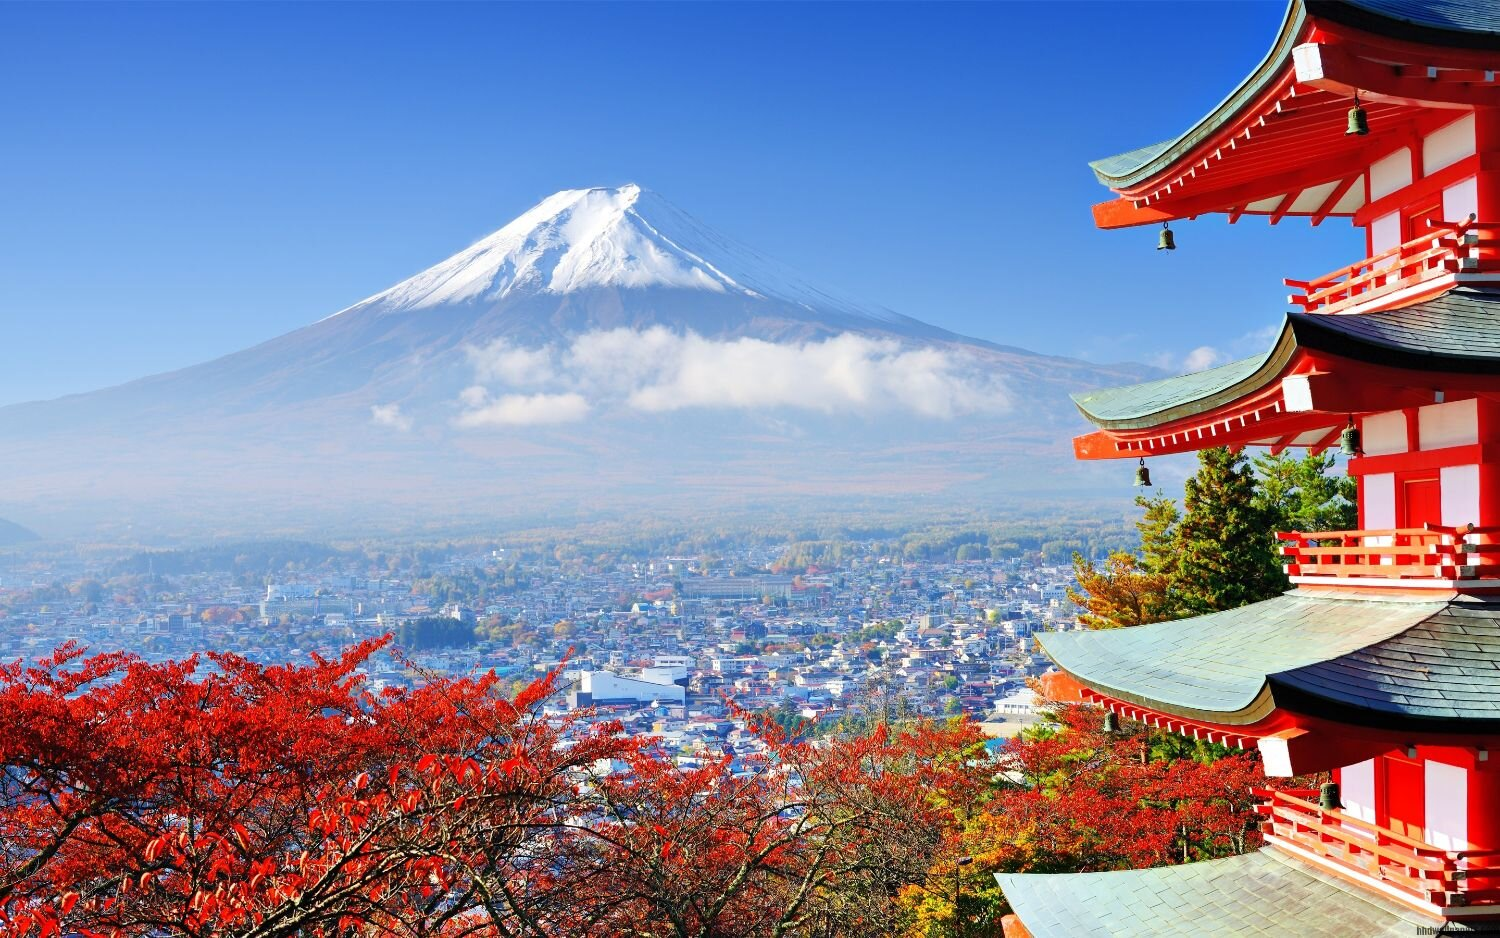 Mount-Fuji-in-Japan-highest-mountain-wide__1523292657874__w1500.jpg